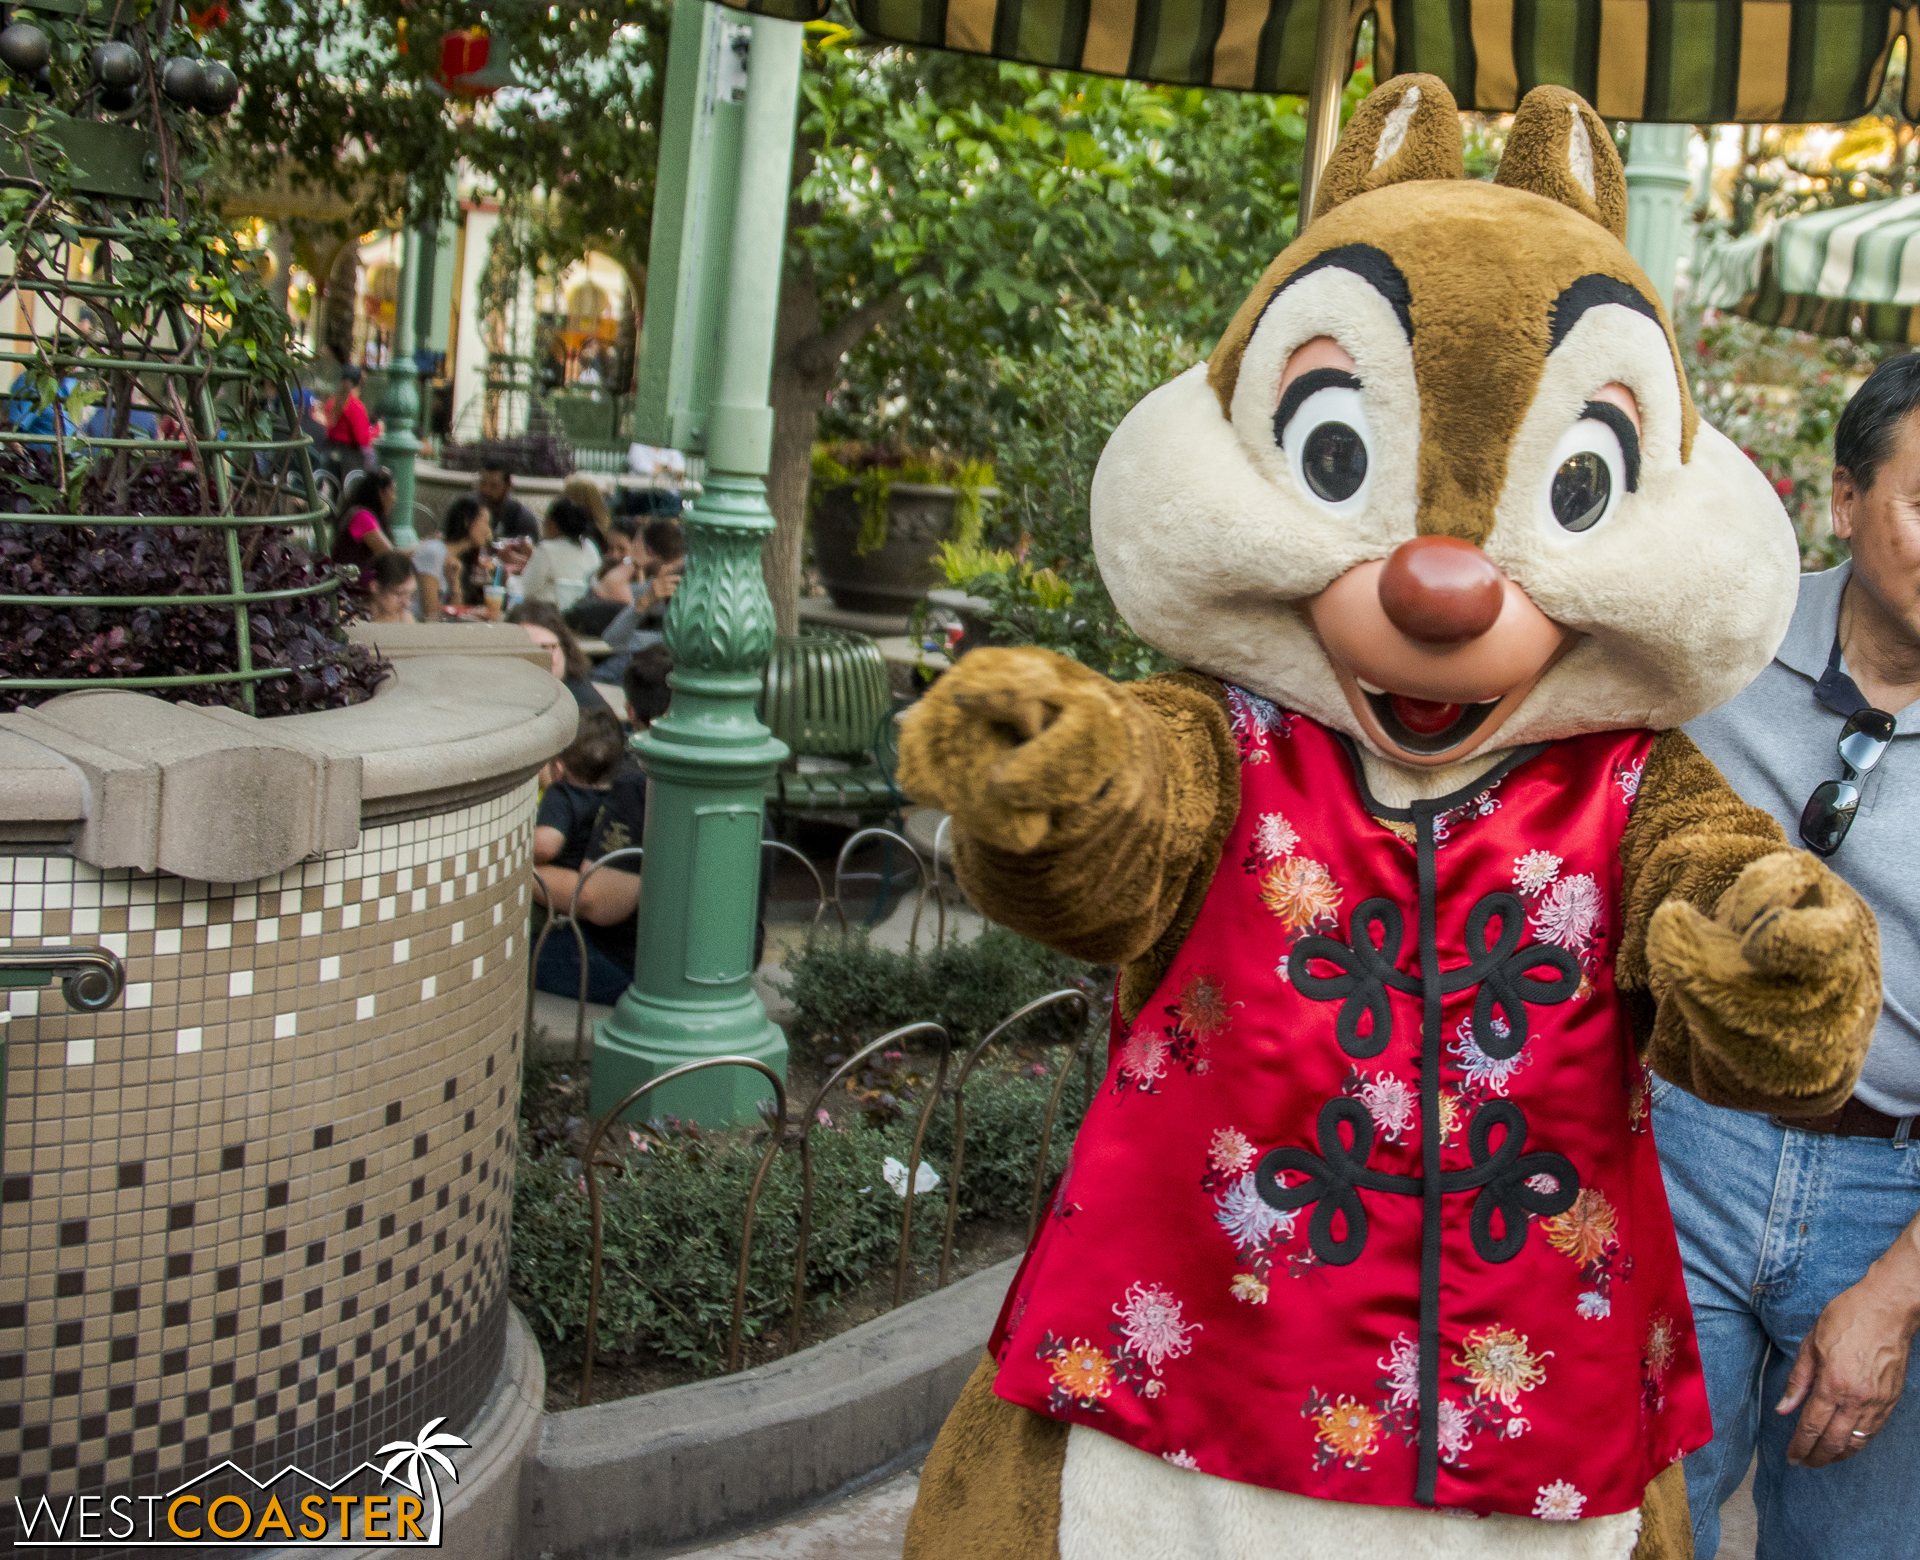 Just like last year, I ran into Chip & Dale.